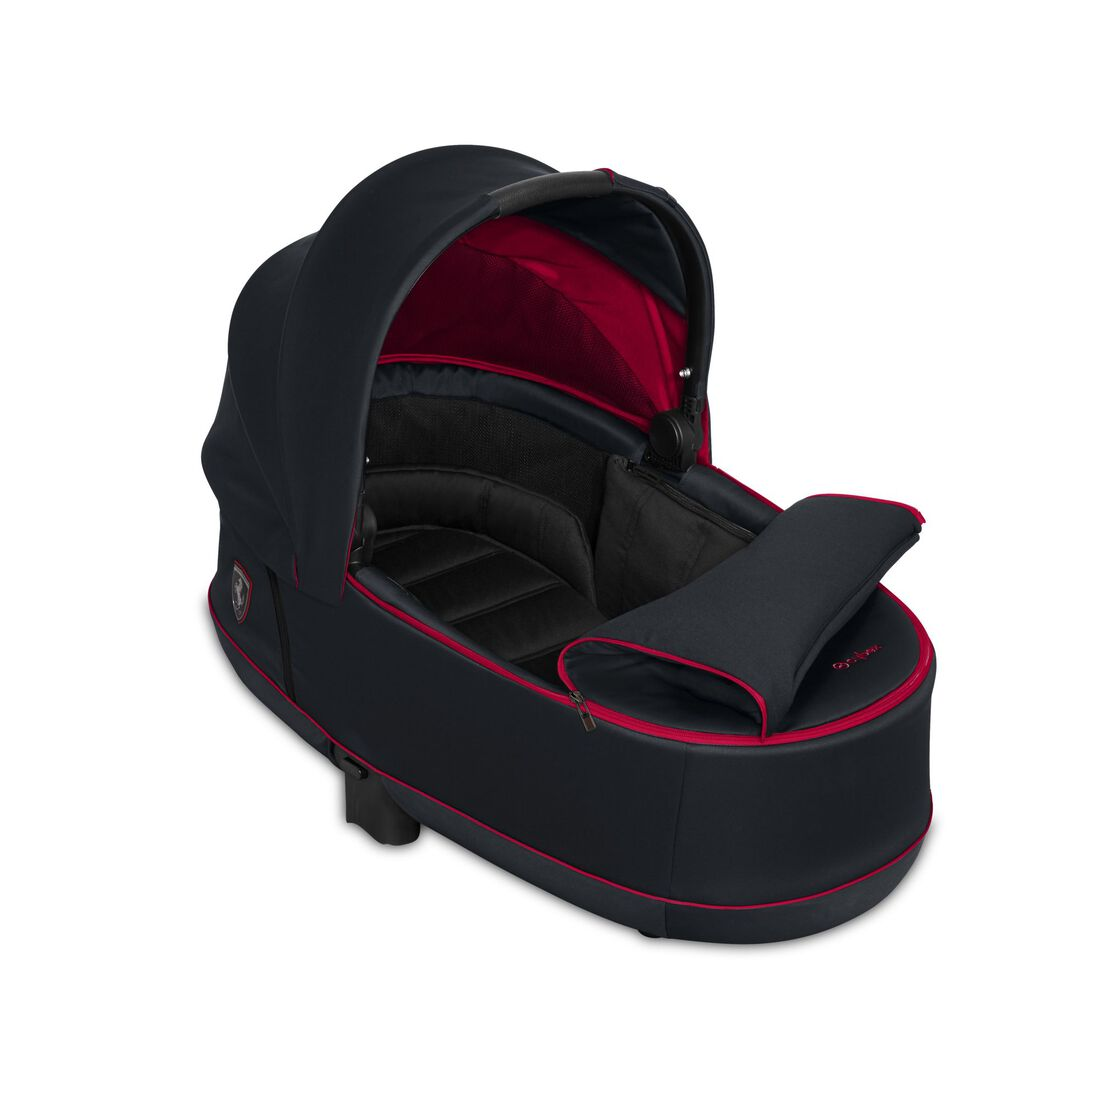 CYBEX Priam Lux Carry Cot - Ferrari Victory Black in Ferrari Victory Black large image number 2